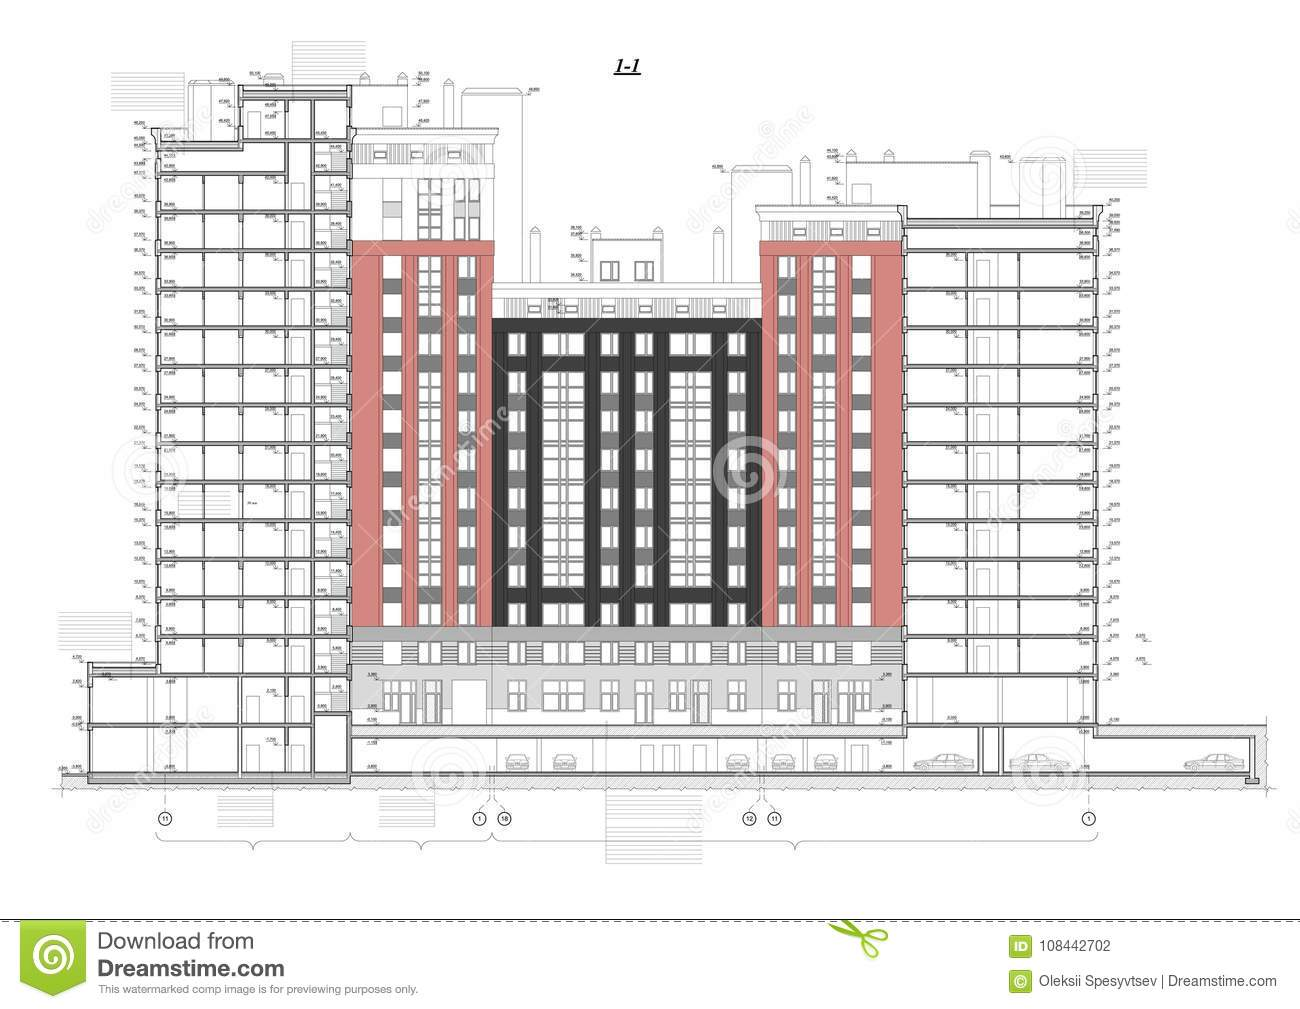 Detailed architectural plan of multistory building with underground garage parking. Cross-section view. Vector blueprint.